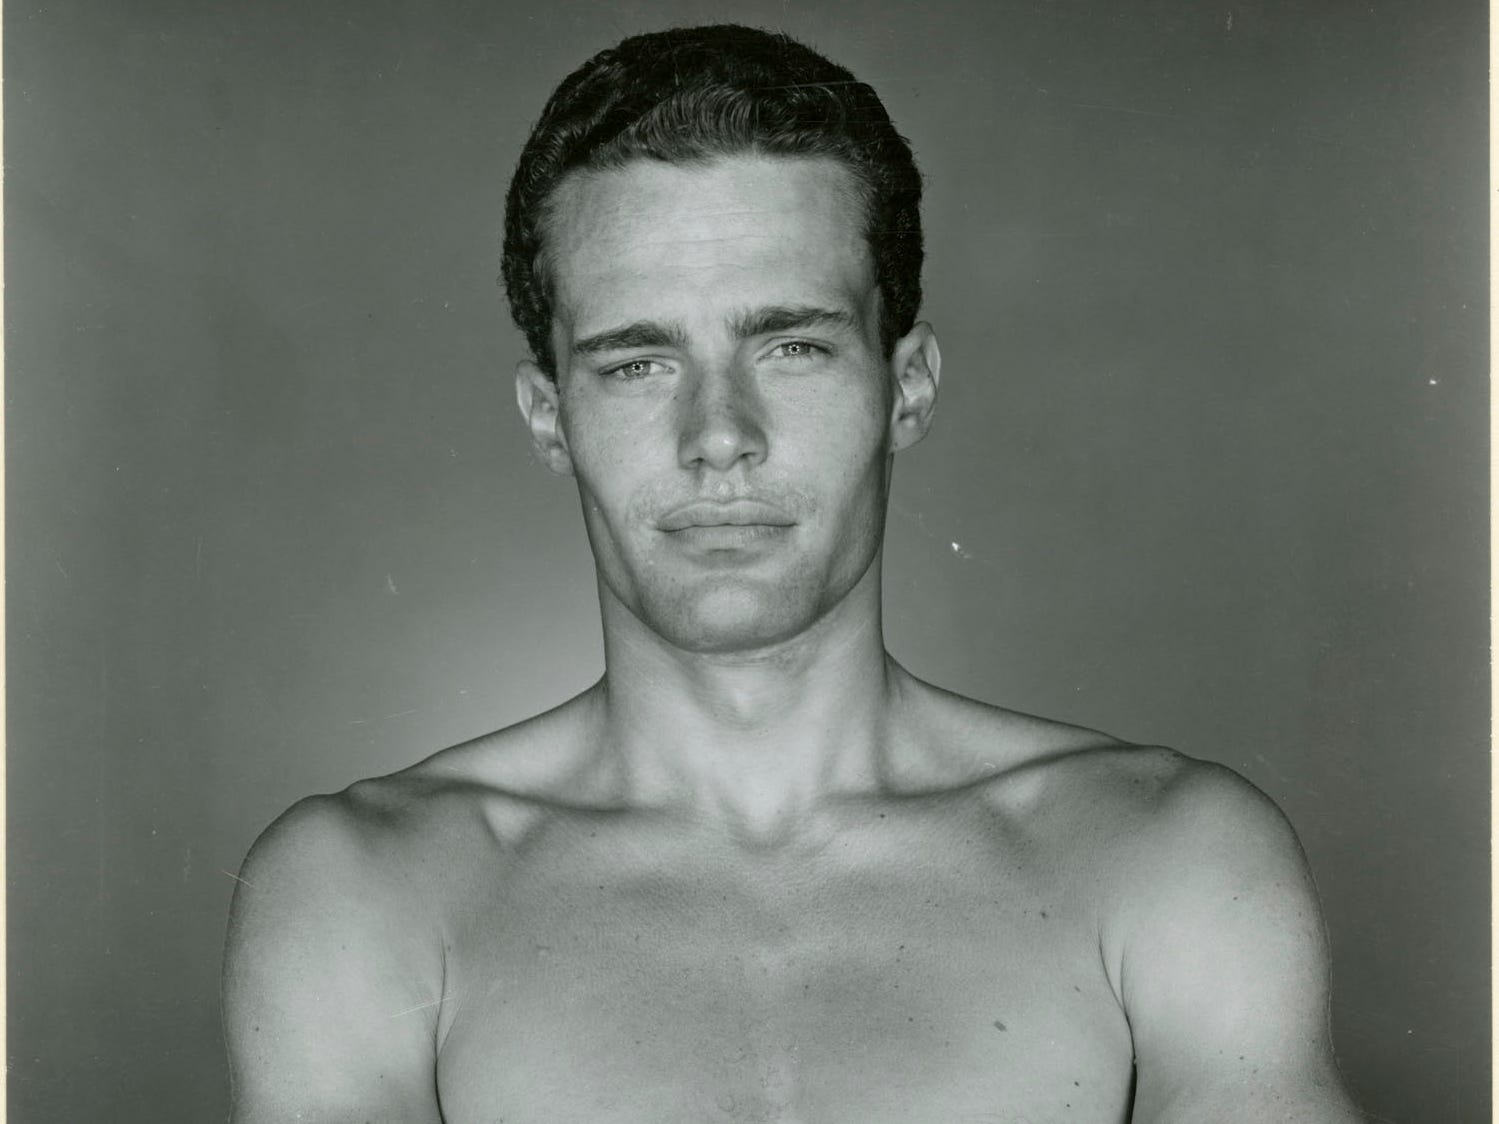 "George Platt Lynes (American, 1907–1955), Name Withheld, 1954, gelatin silver print, 7–1/2 × 9 in.  ""Sensual / Sexual / Social:  The Photography of George Platt Lynes"" exhibit will be at Newfields, Sept. 30, 2018 through Feb. 24, 2019.  Photo is from the Collections of the Kinsey Institute, Indiana University.  © Estate of George Platt Lynes."